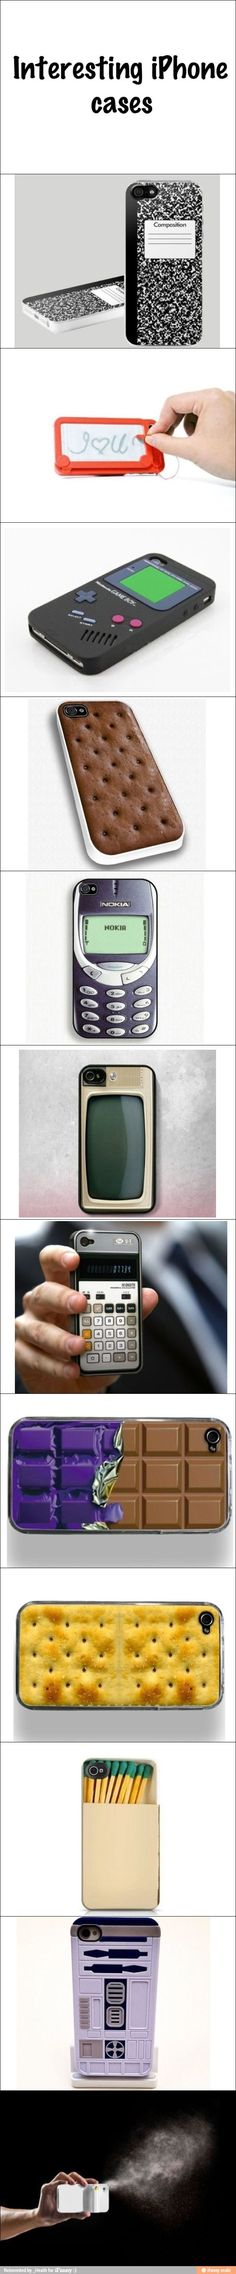 Cool iPhone cases